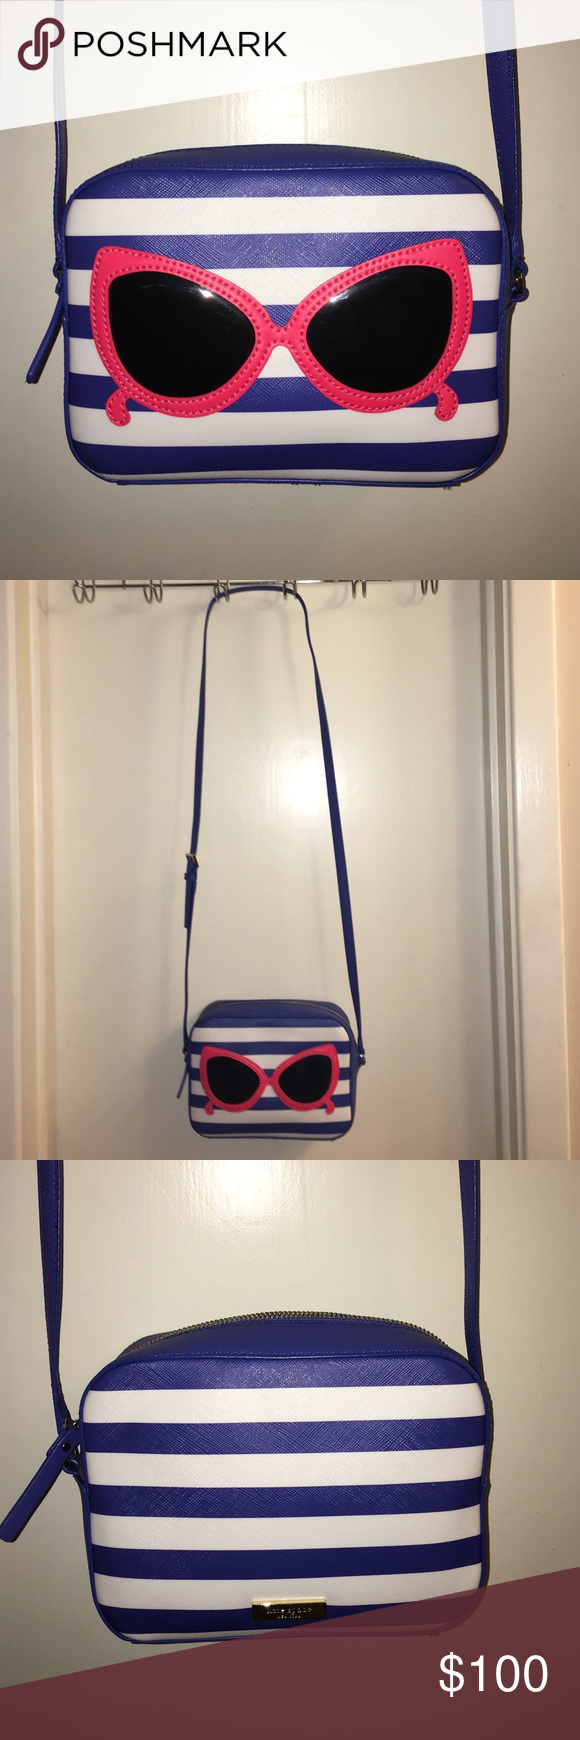 Kate Spade, Like New, Sunglasses Crossbody Purse Kate Spade, Sunglasses Crossbody Purse. Blue/White stripes. Only worn twice. No damage, like brand new. 100% Authentic! Bought on Poshmark awhile back & no longer use it, needs a good home!  ❌No Trades❌ kate spade Bags Crossbody Bags